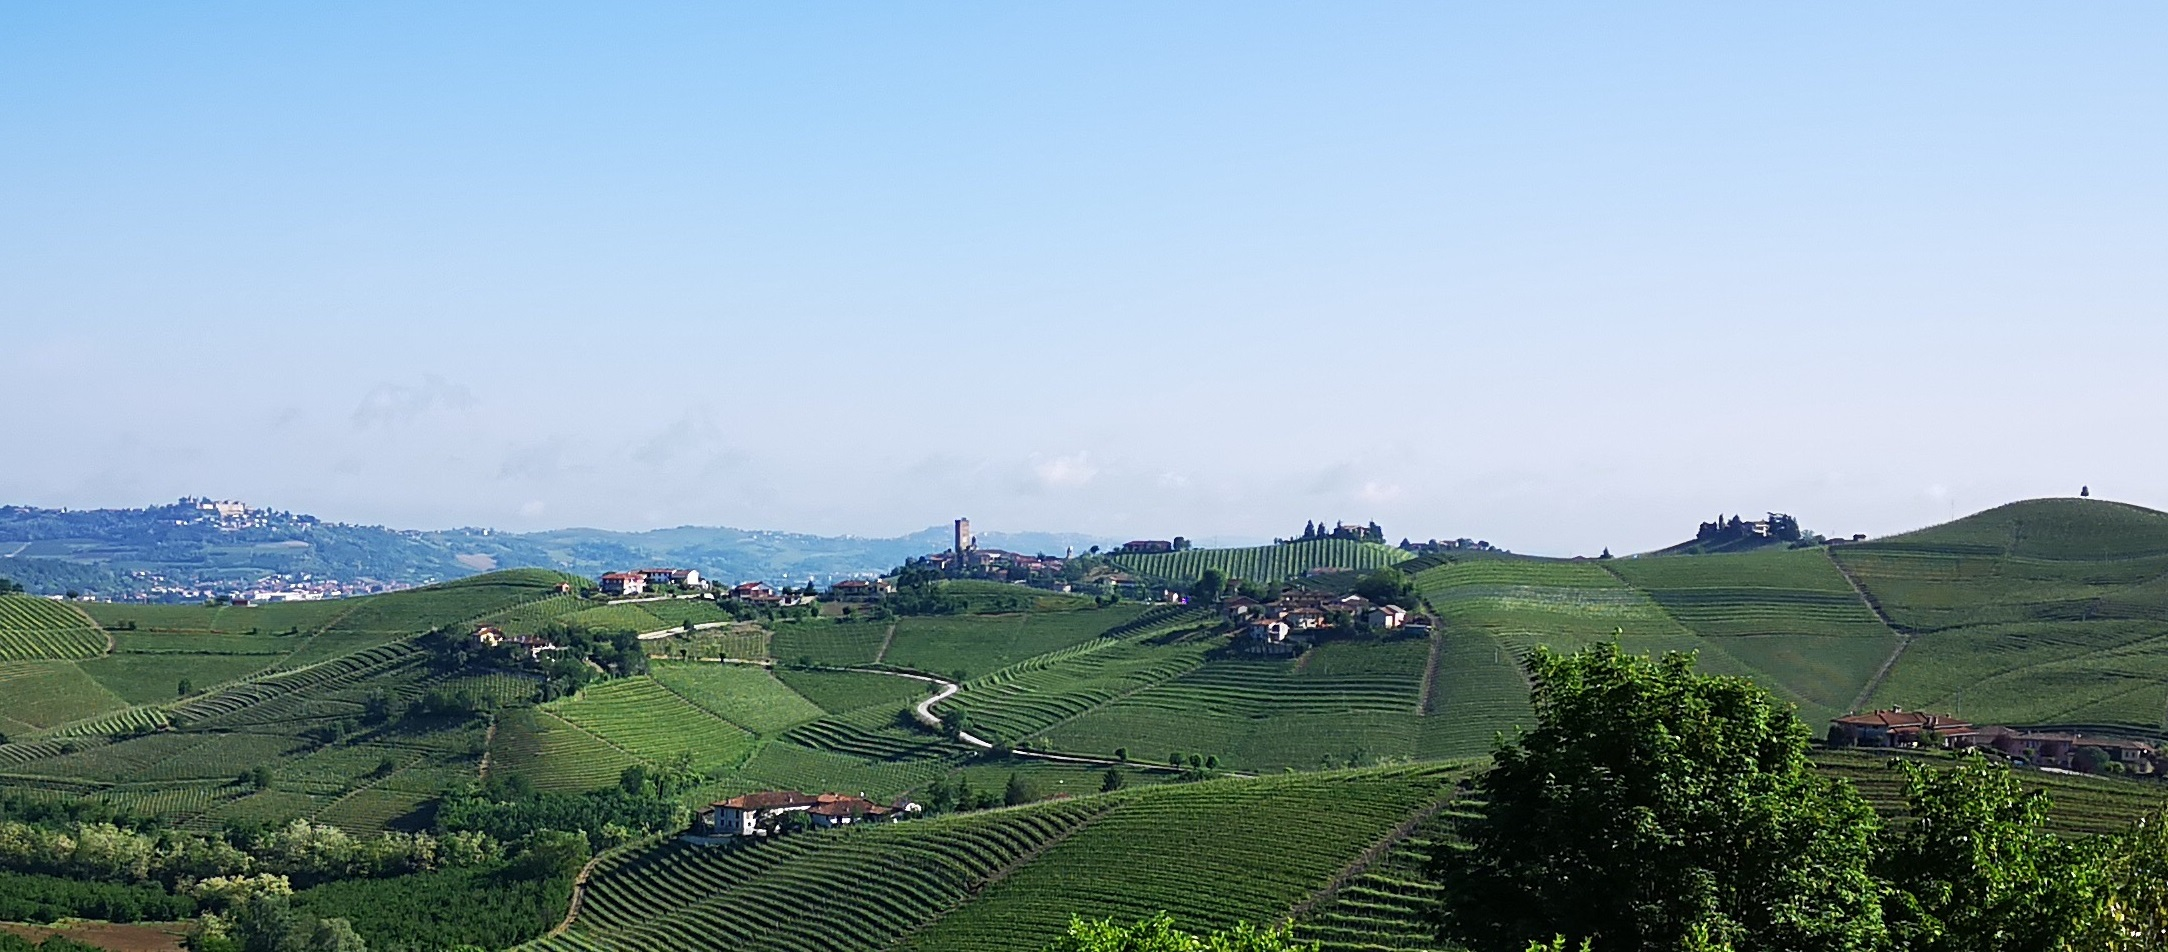 Town of Barbaresco